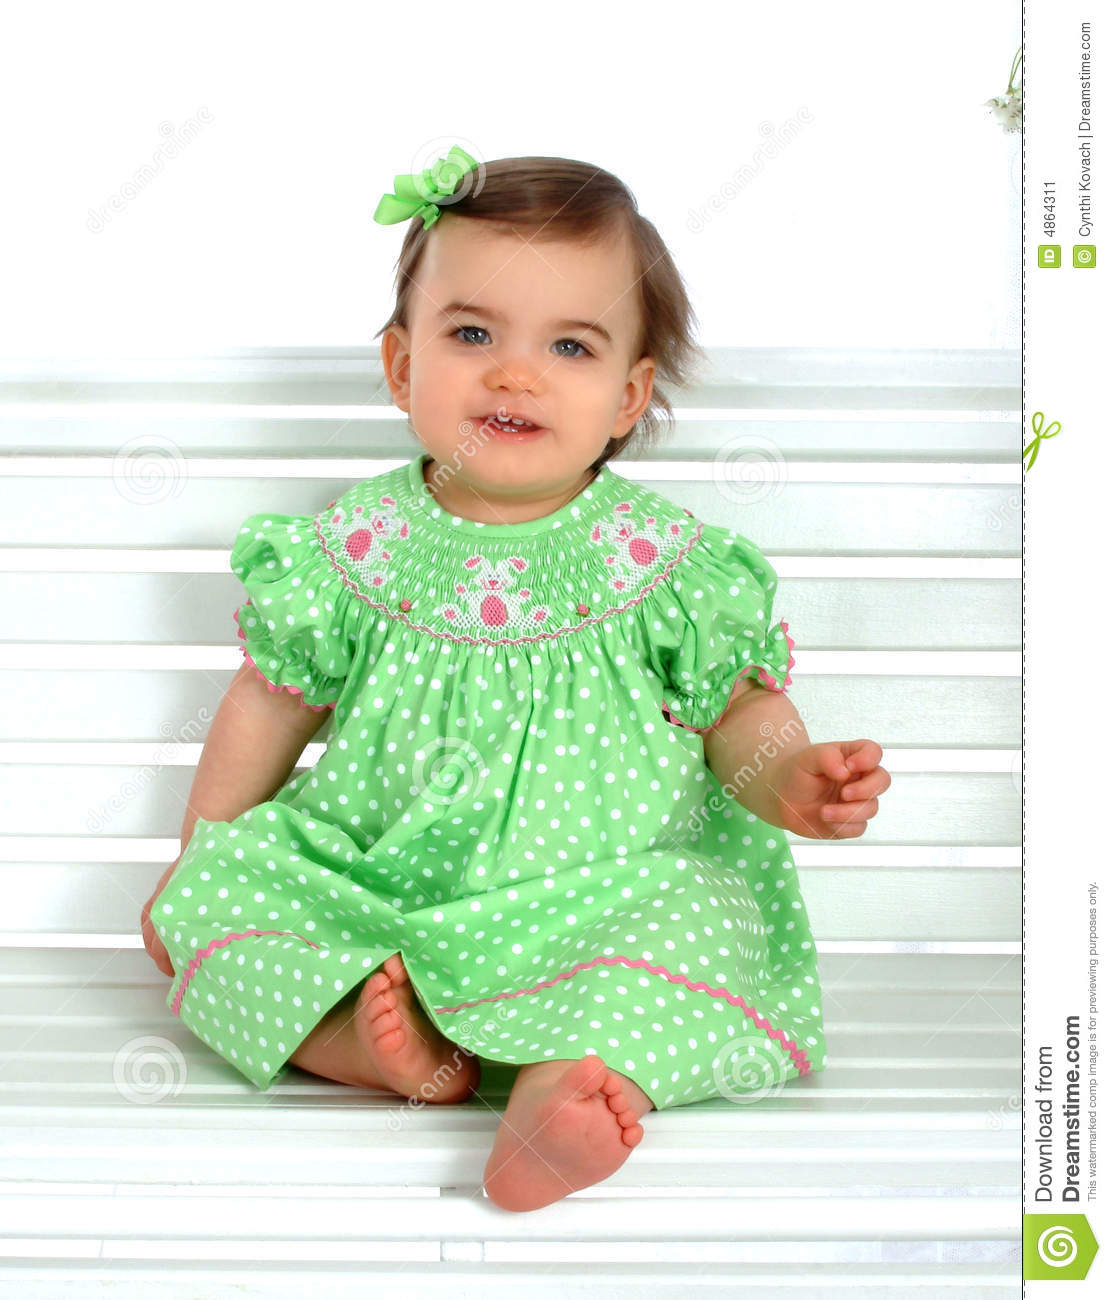 Baby on Bench